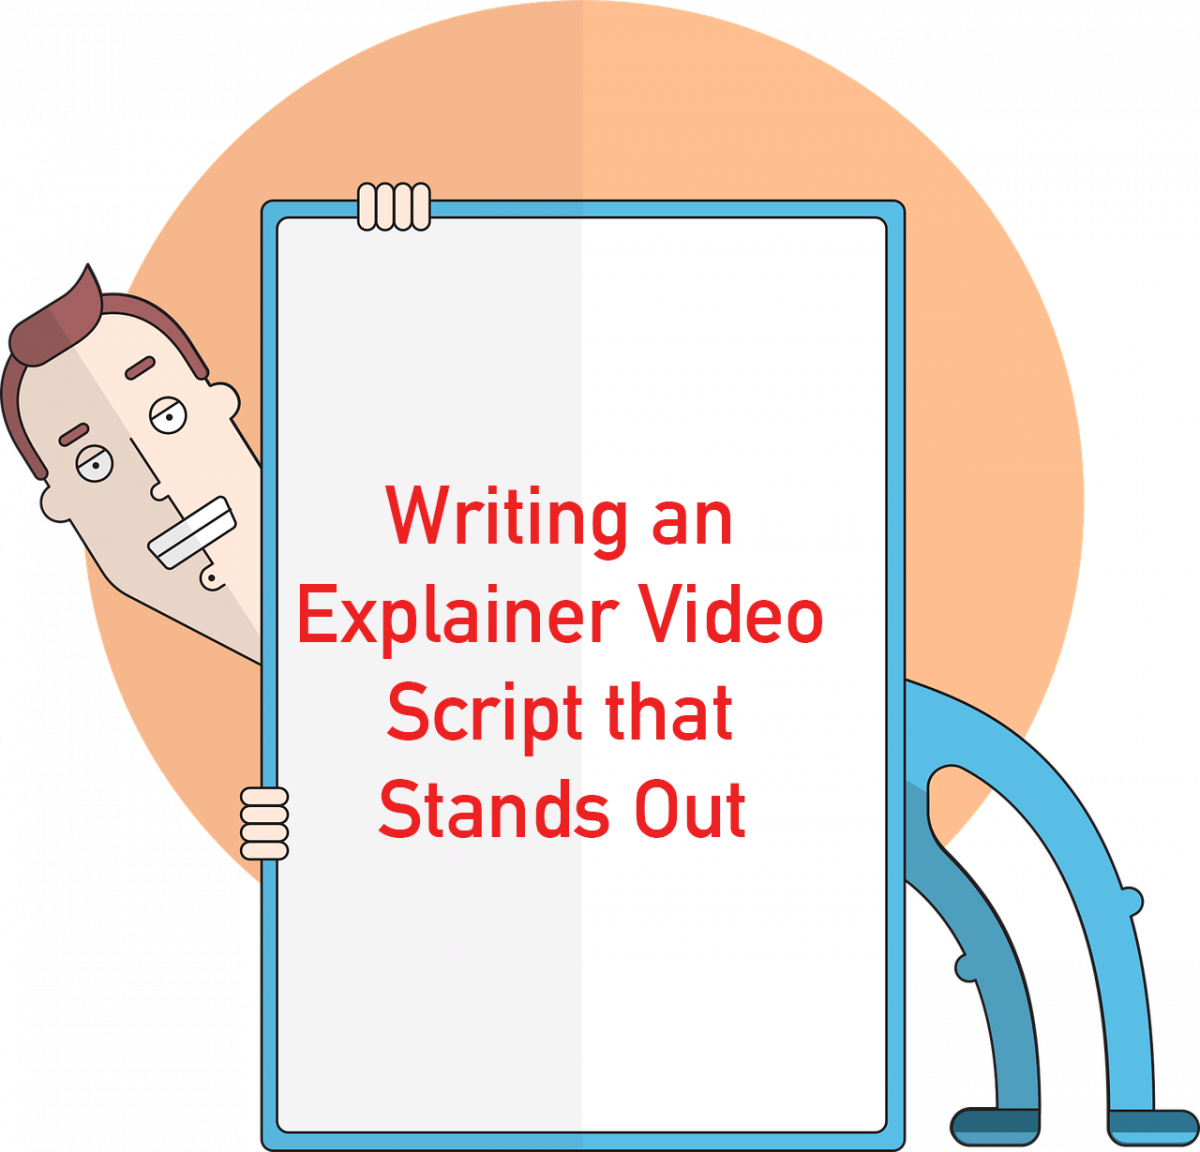 Writing an Explainer Video Script that Stands Out